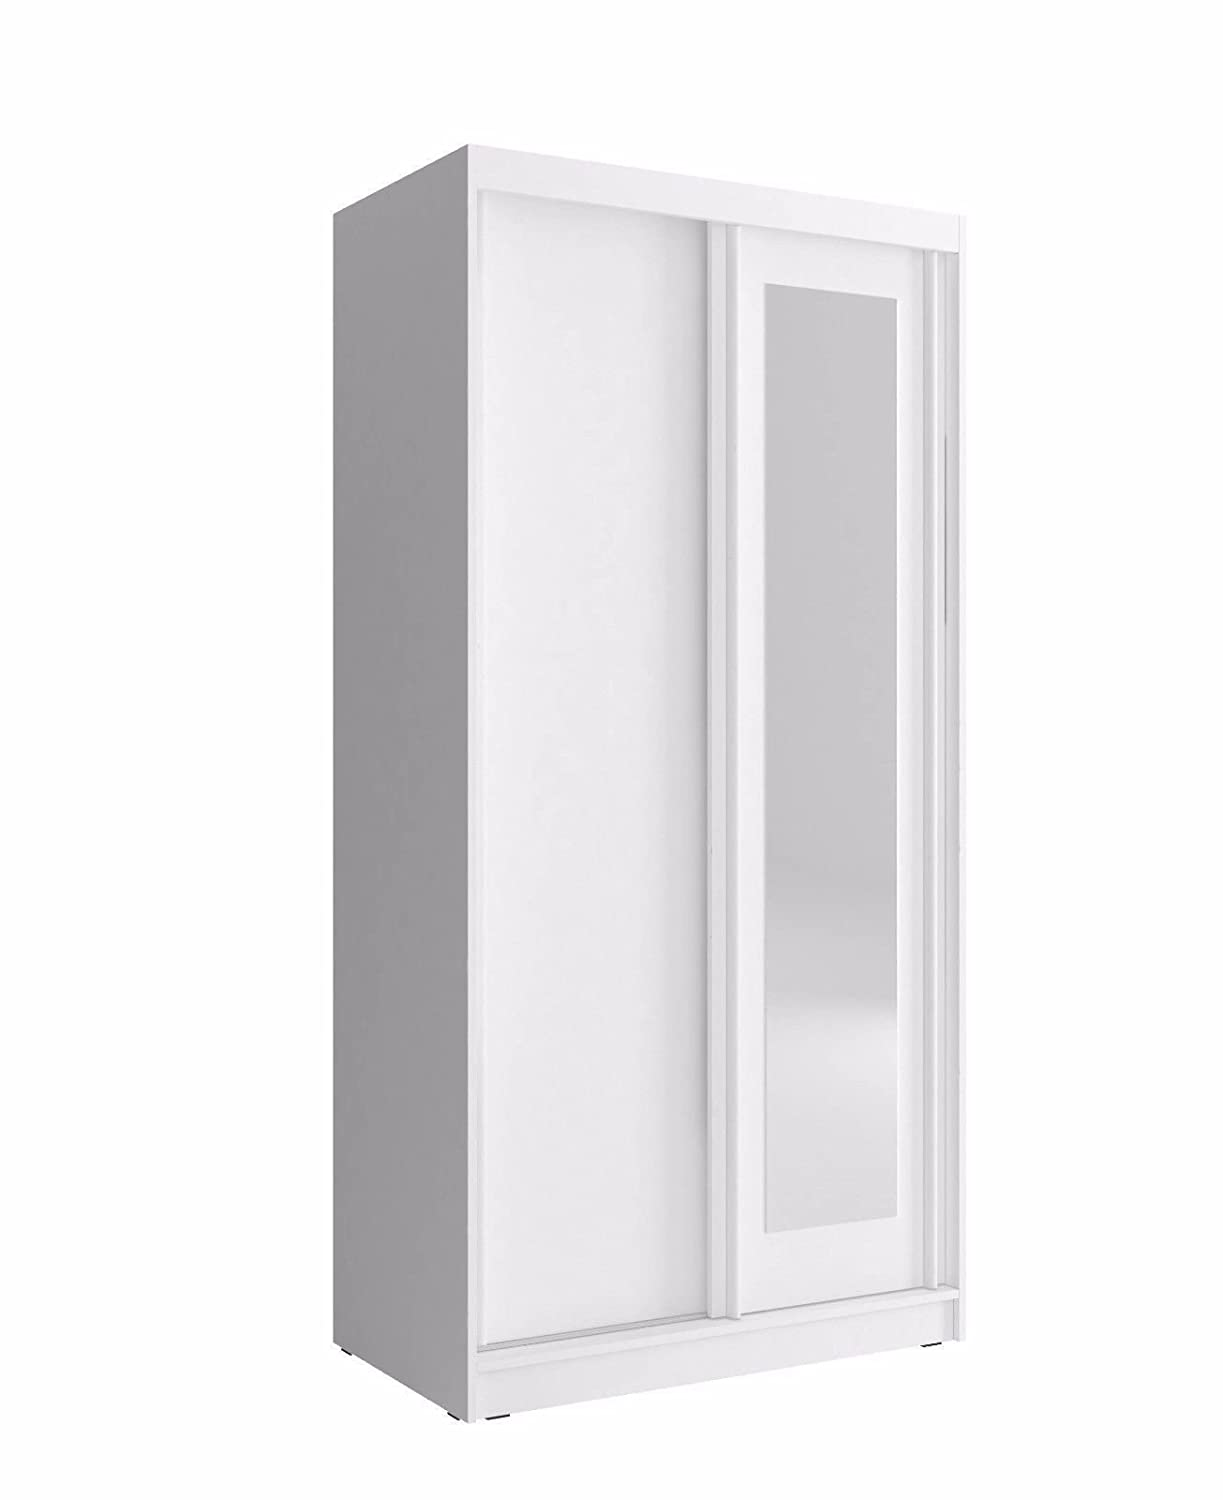 CHECO HOME AND GARDEN FAST DELIVERY 100 cm WIDE SLIDING 2 DOORS WARDROBE (White) CHECO LTD